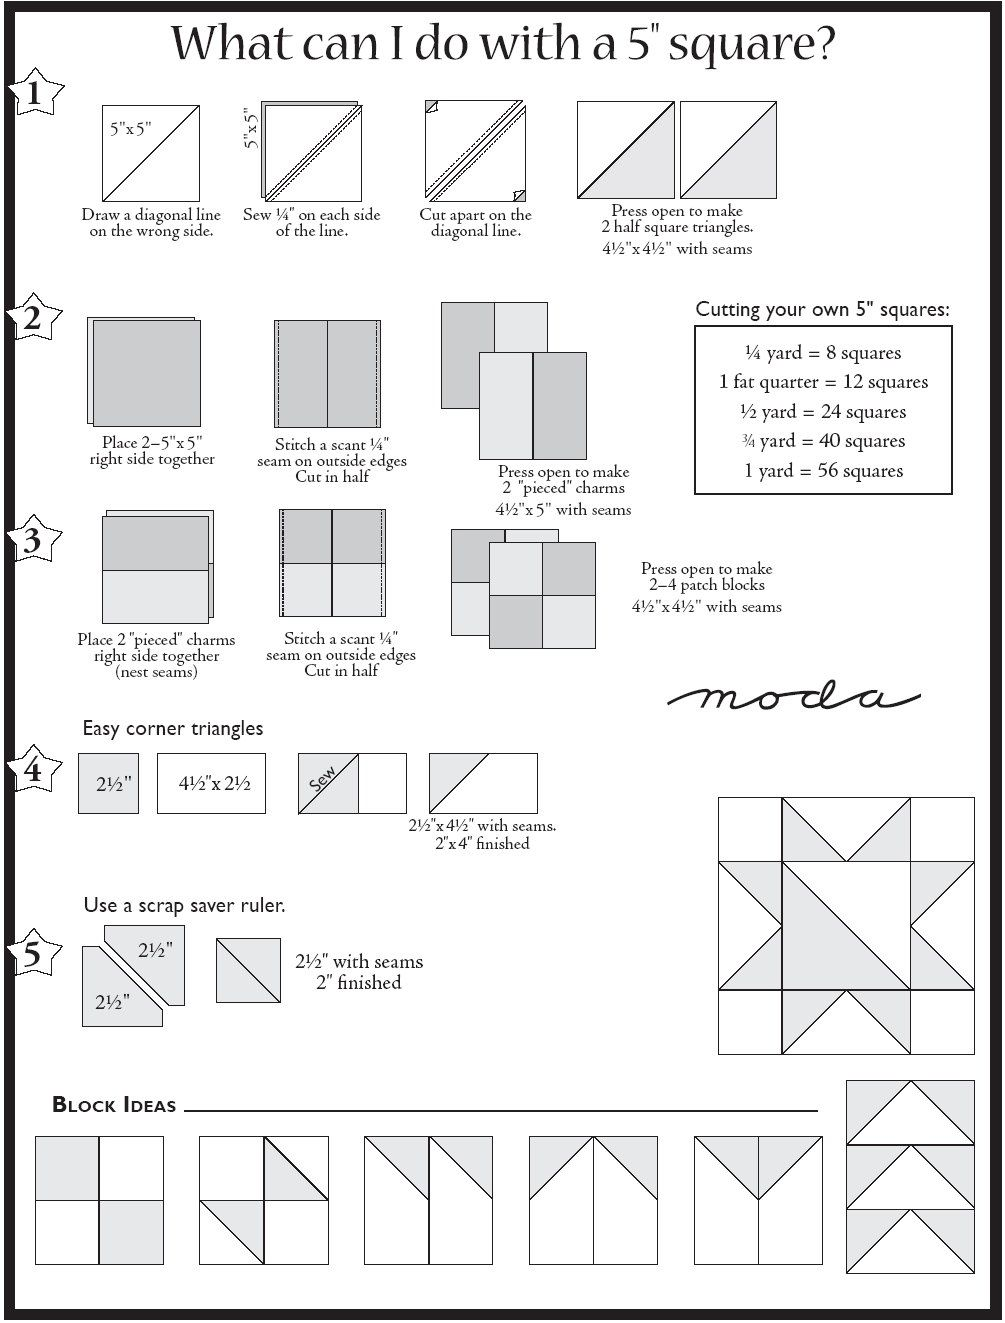 5-inch square quick reference for getting different combos ... : 5 inch quilt block patterns - Adamdwight.com